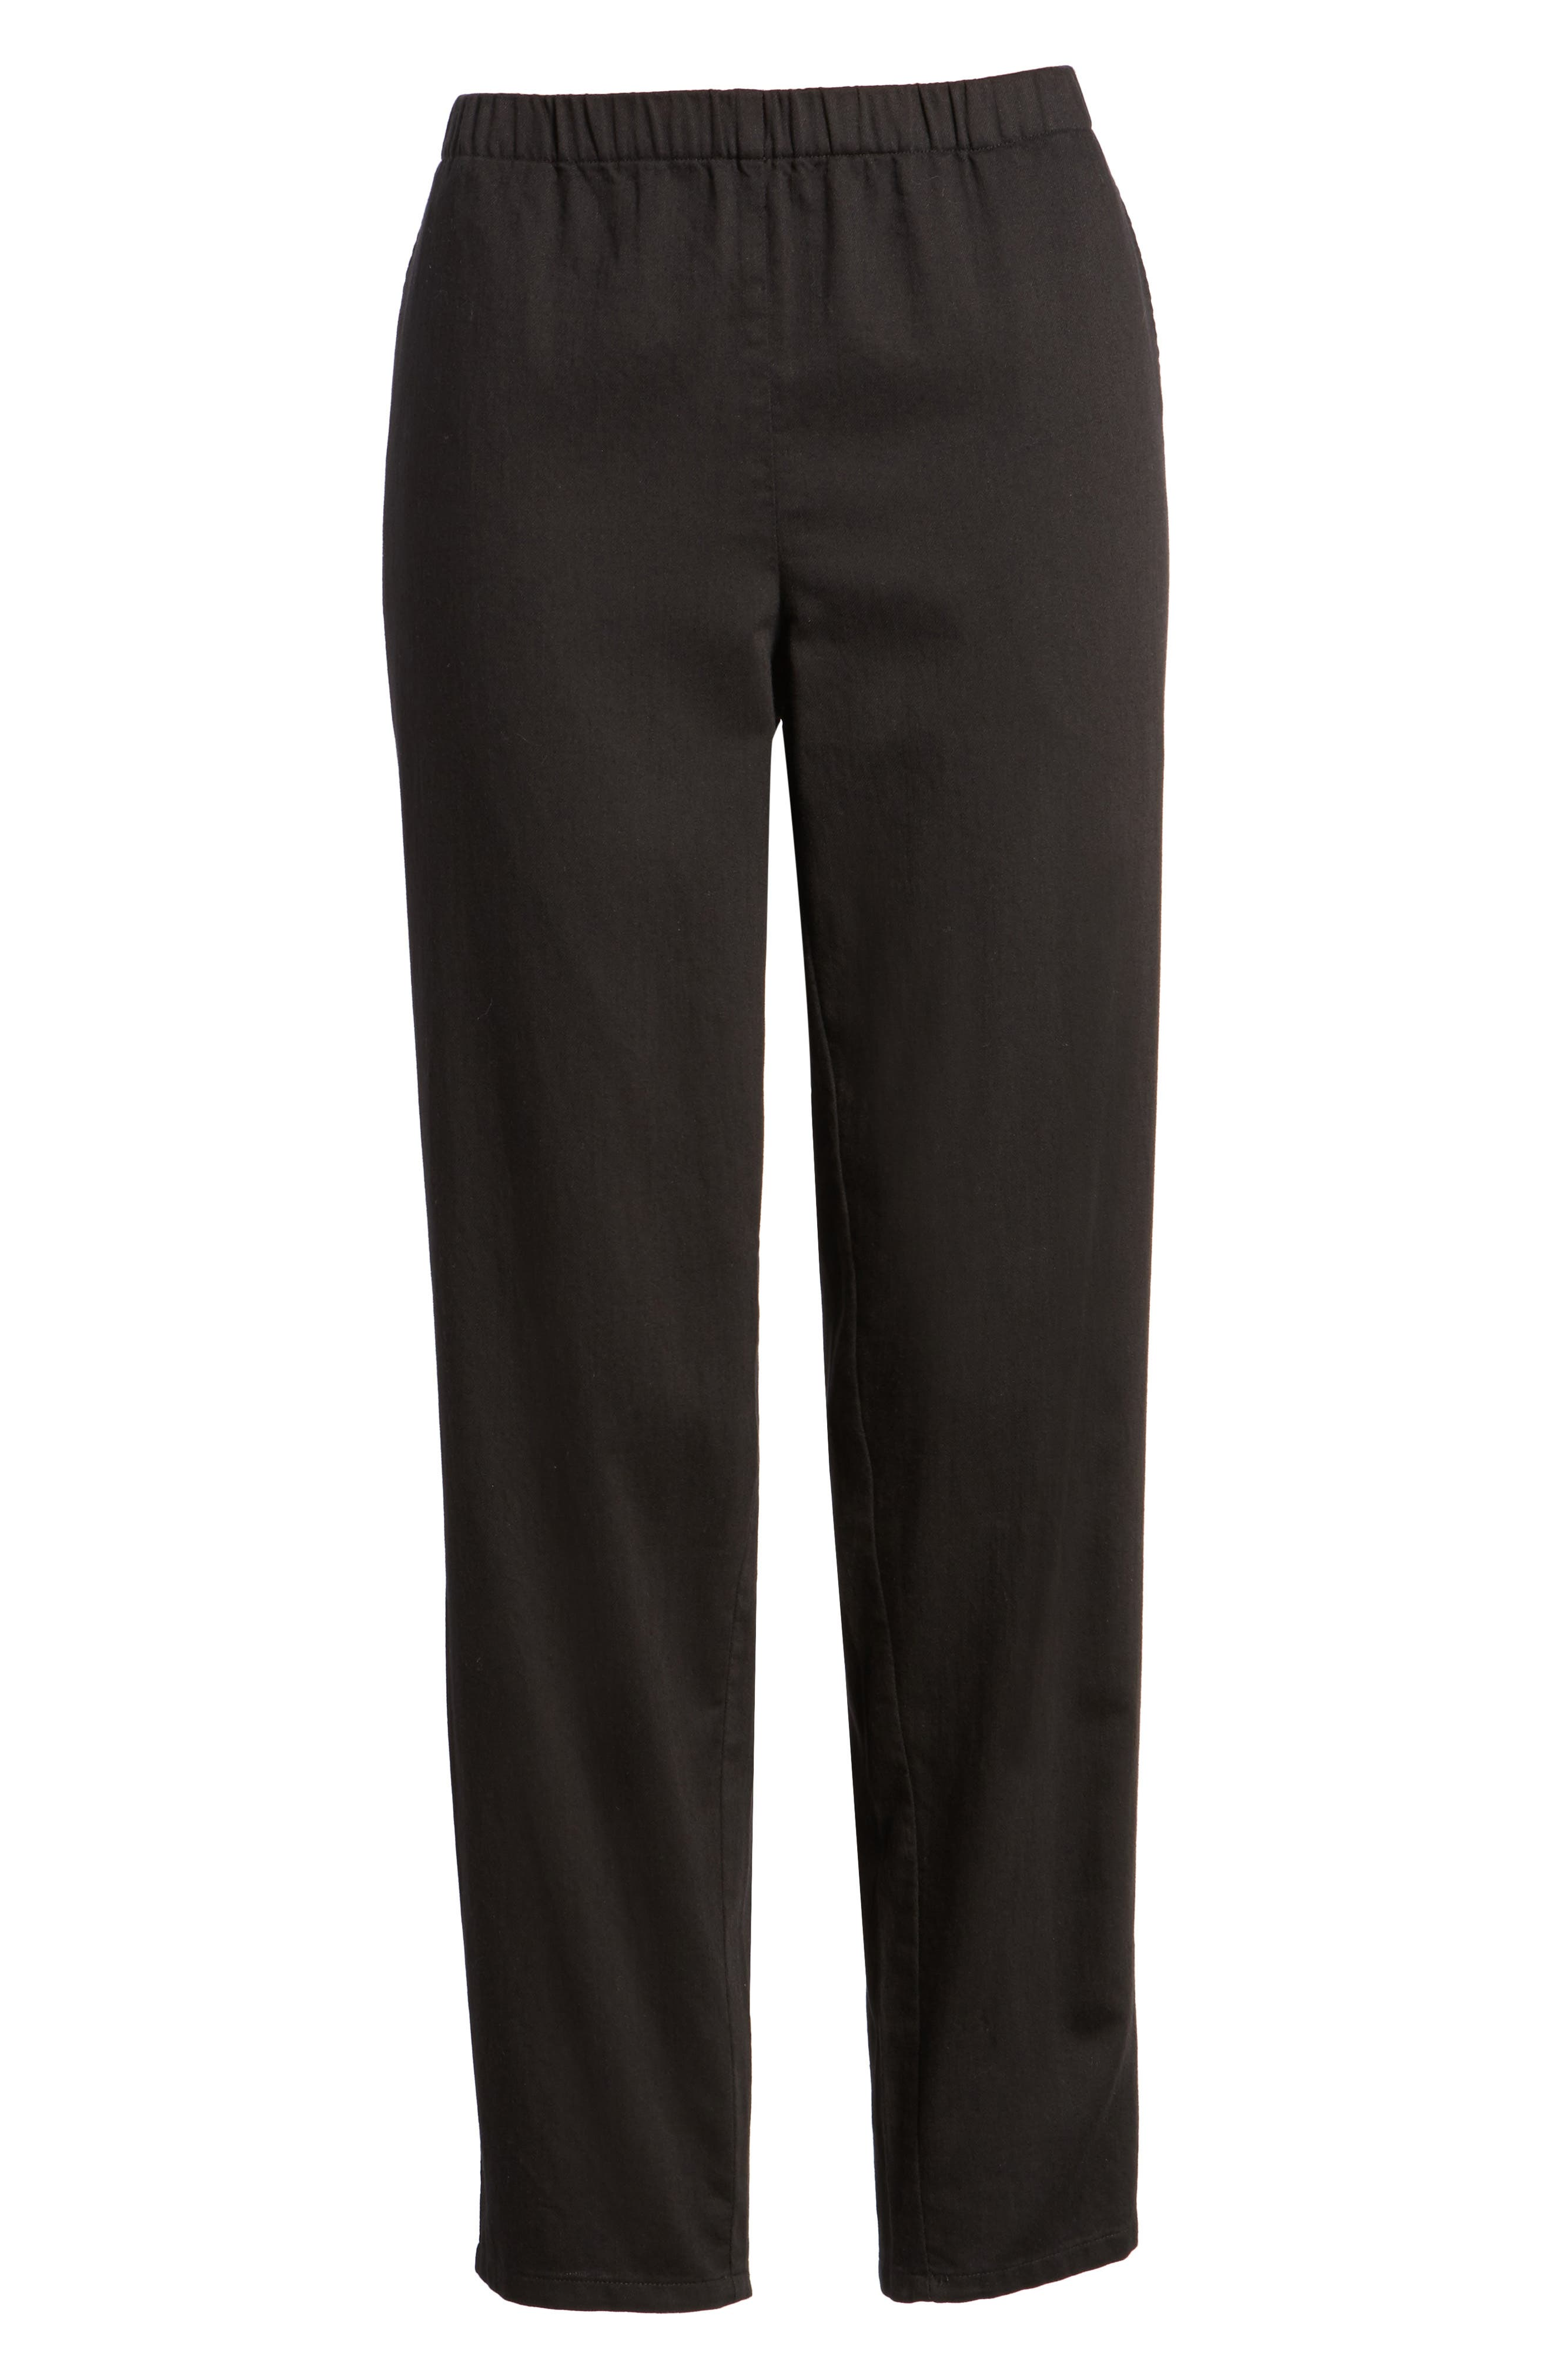 Organic Cotton Tapered Ankle Pants,                             Alternate thumbnail 22, color,